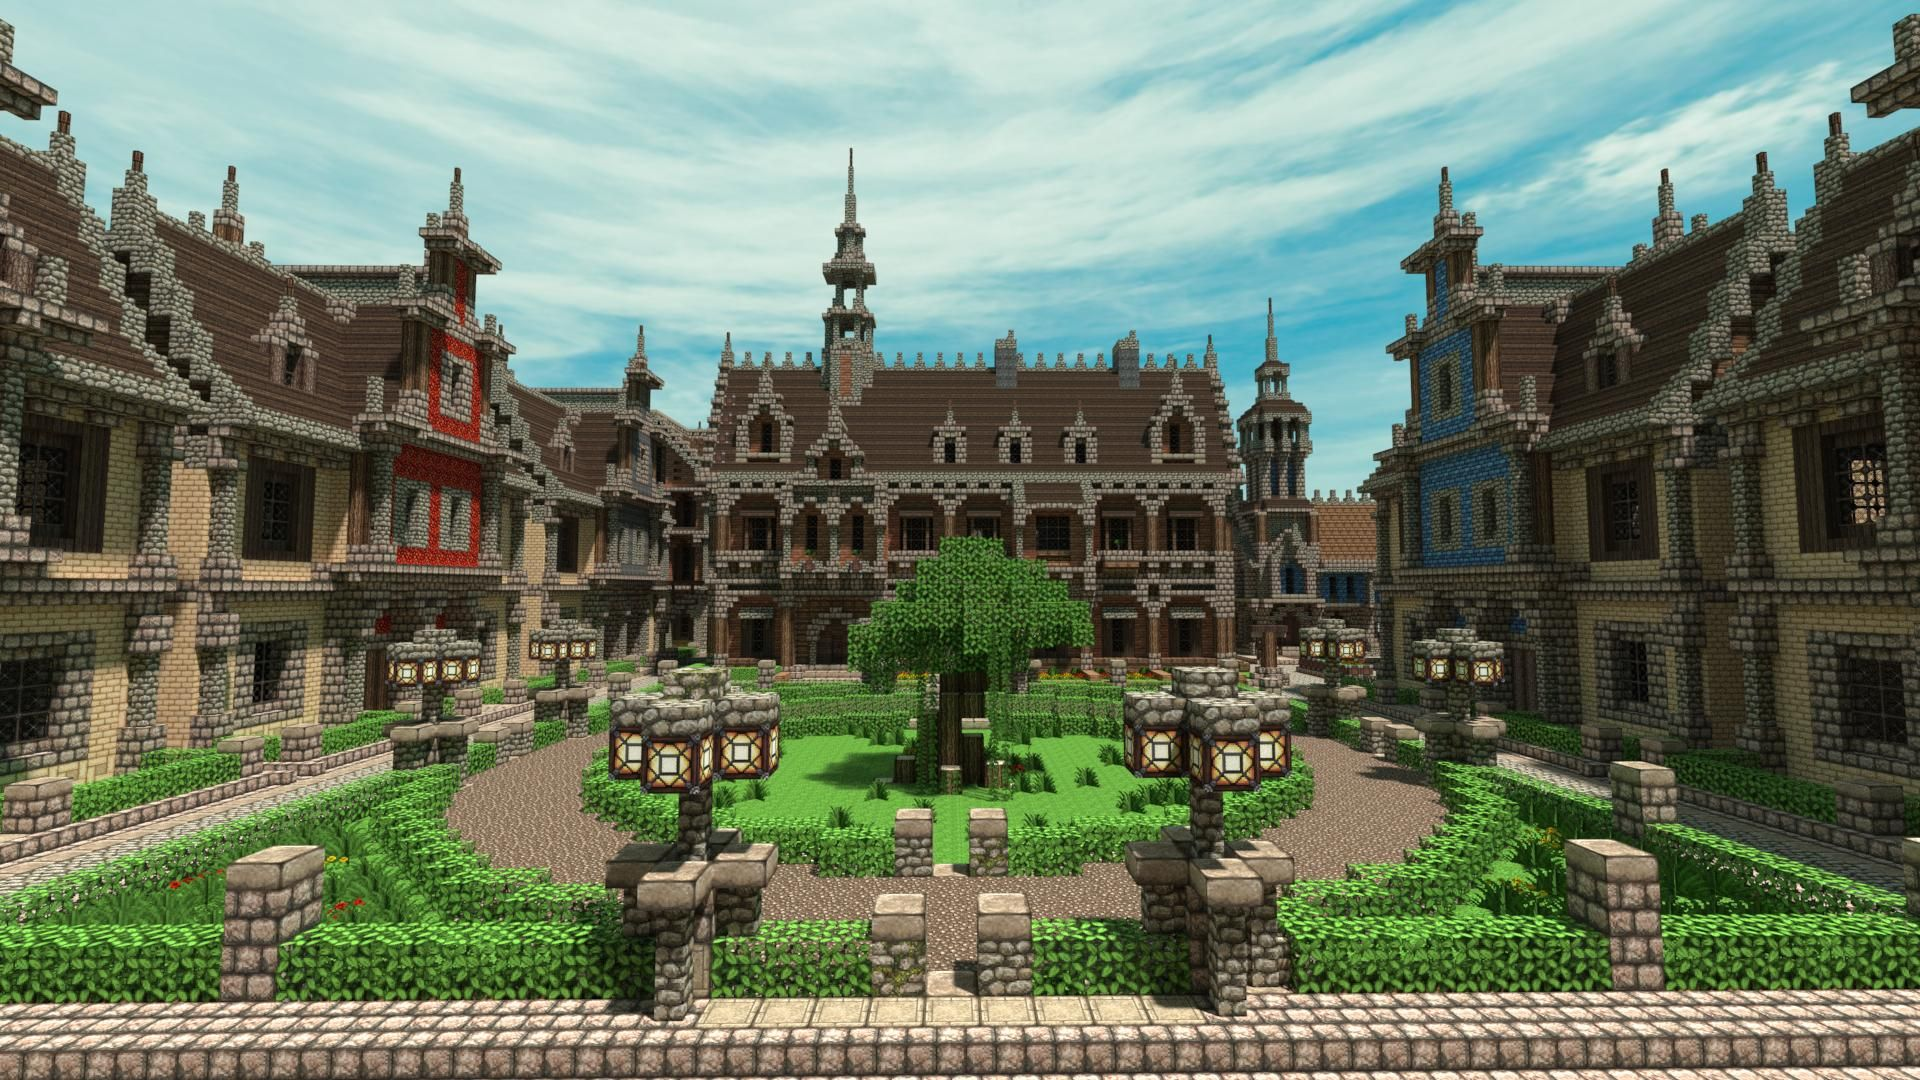 Minecraft Town Square